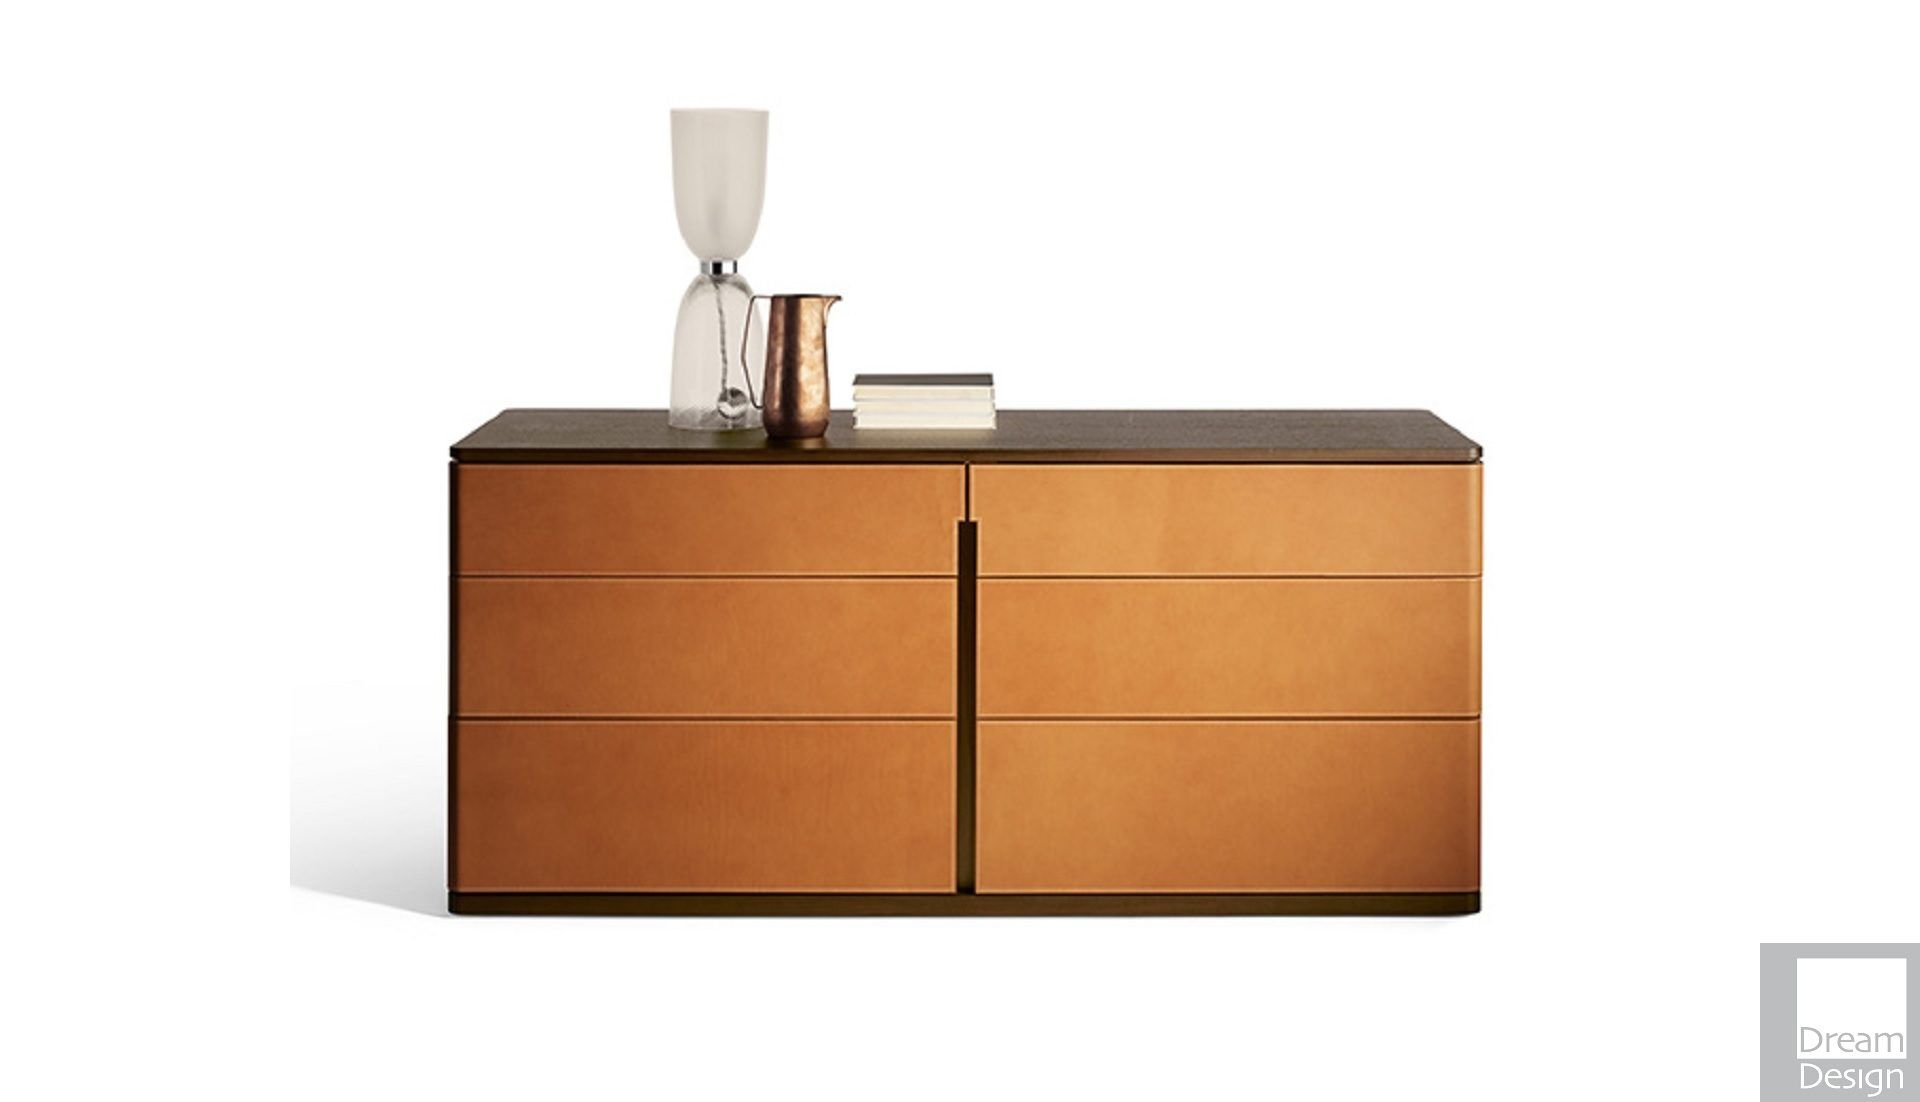 Poltrona Frau Fidelio Notte Chest of Drawers